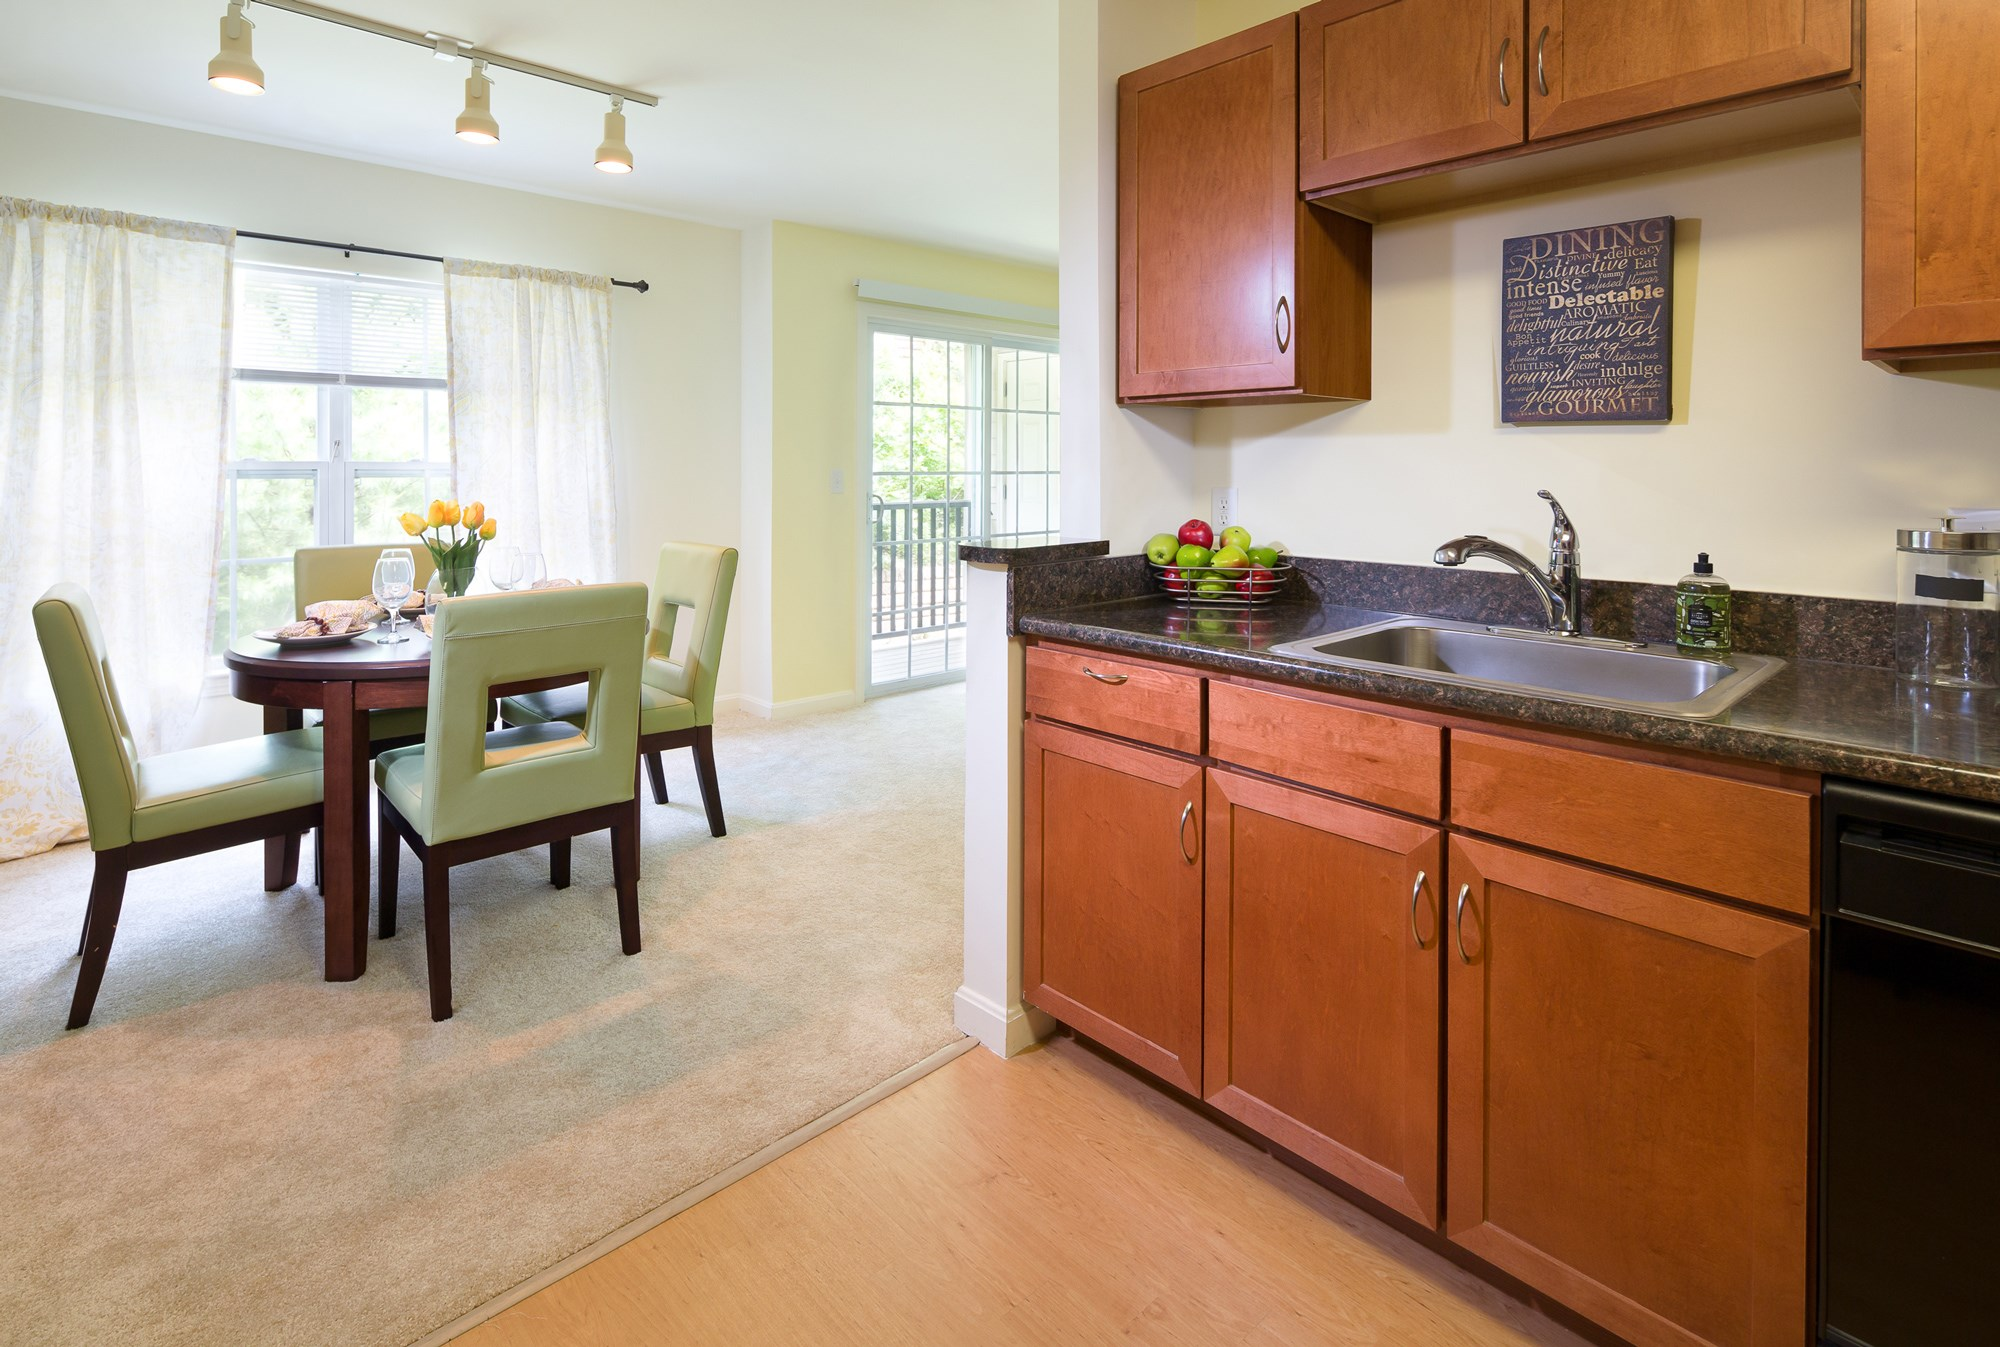 Kitchen and Dining area at Huntington Townhomes in Shelton, CT